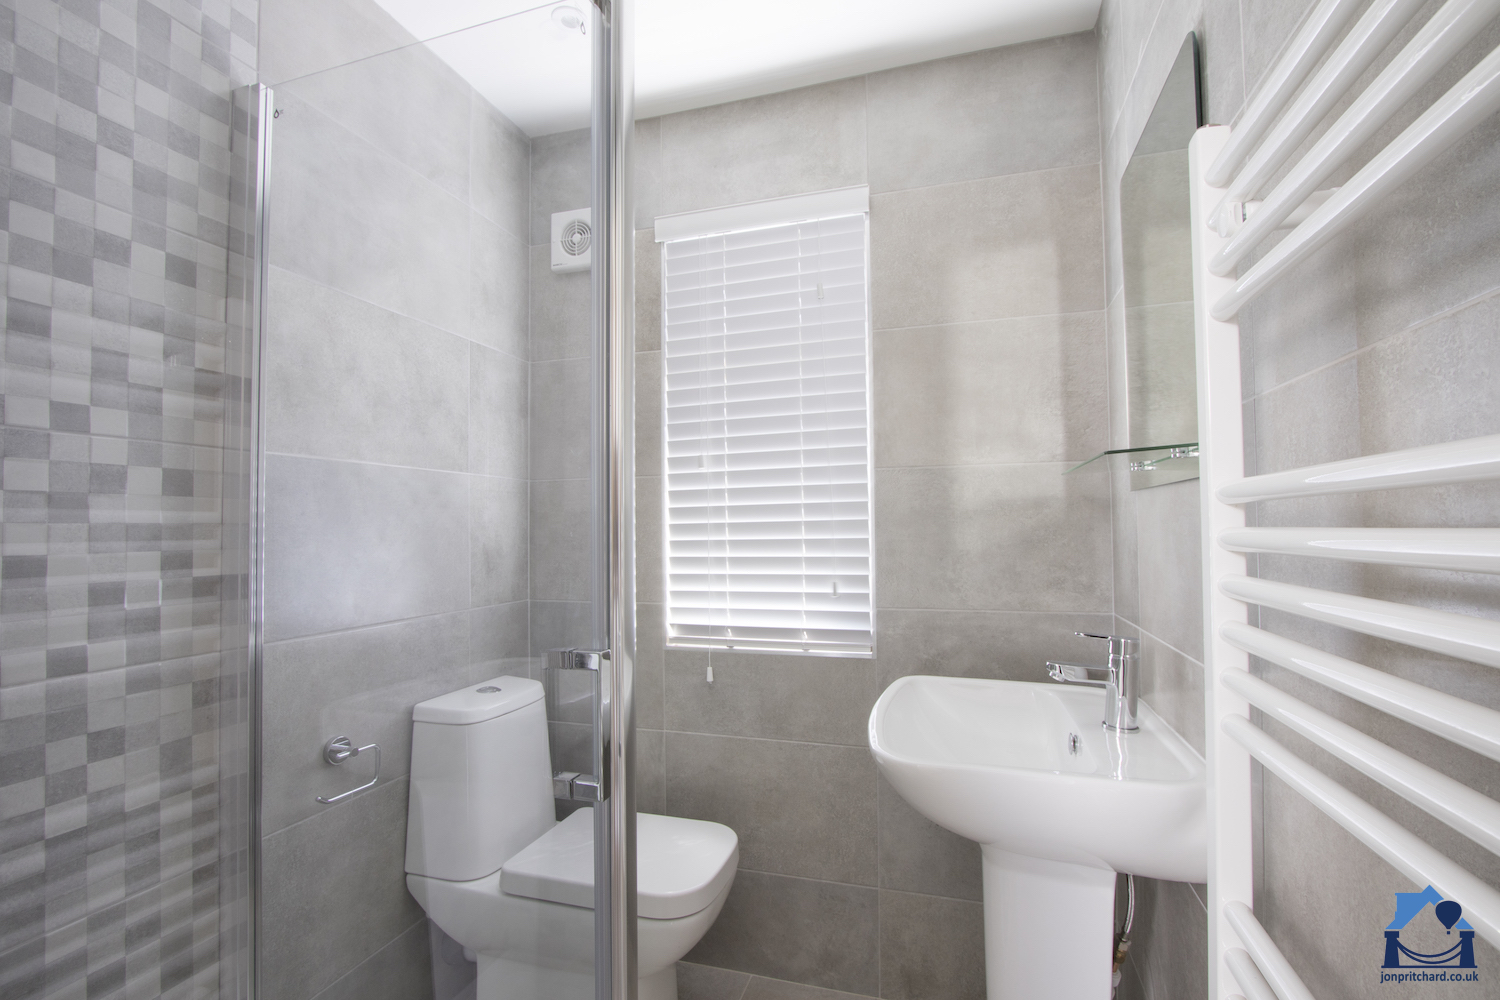 Though small, this loft conversion en-suite features a good sized shower with easy-clean glass screen, loo and free standing basin.